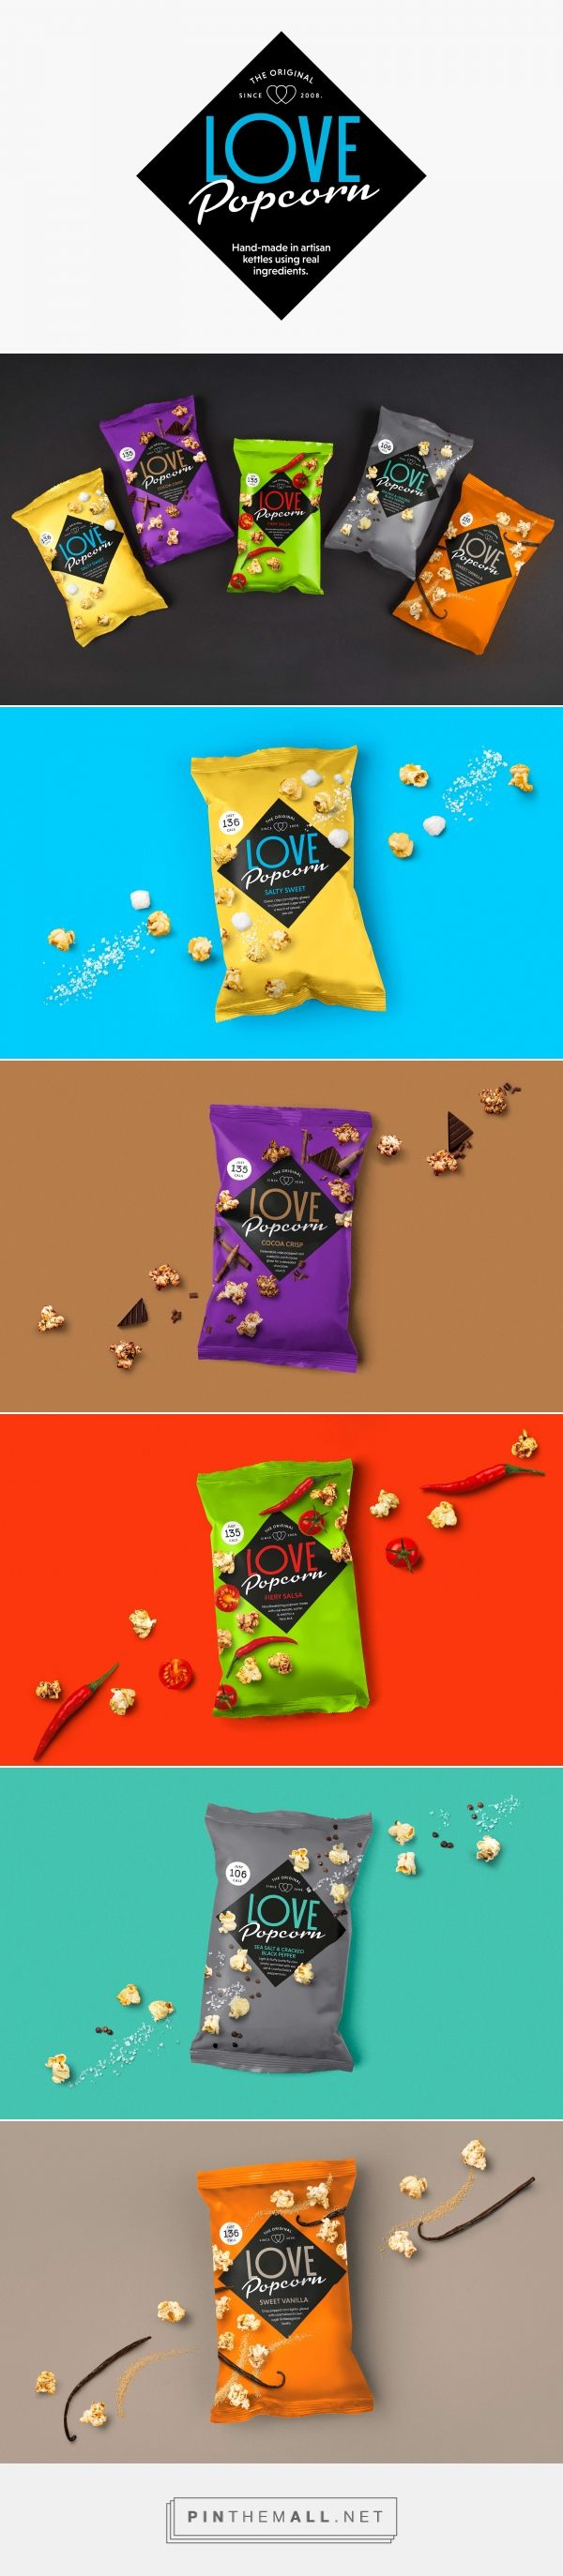 Love Popcorn | Branding & Packaging Design | Designed by Robot Food | www.robot-food.com